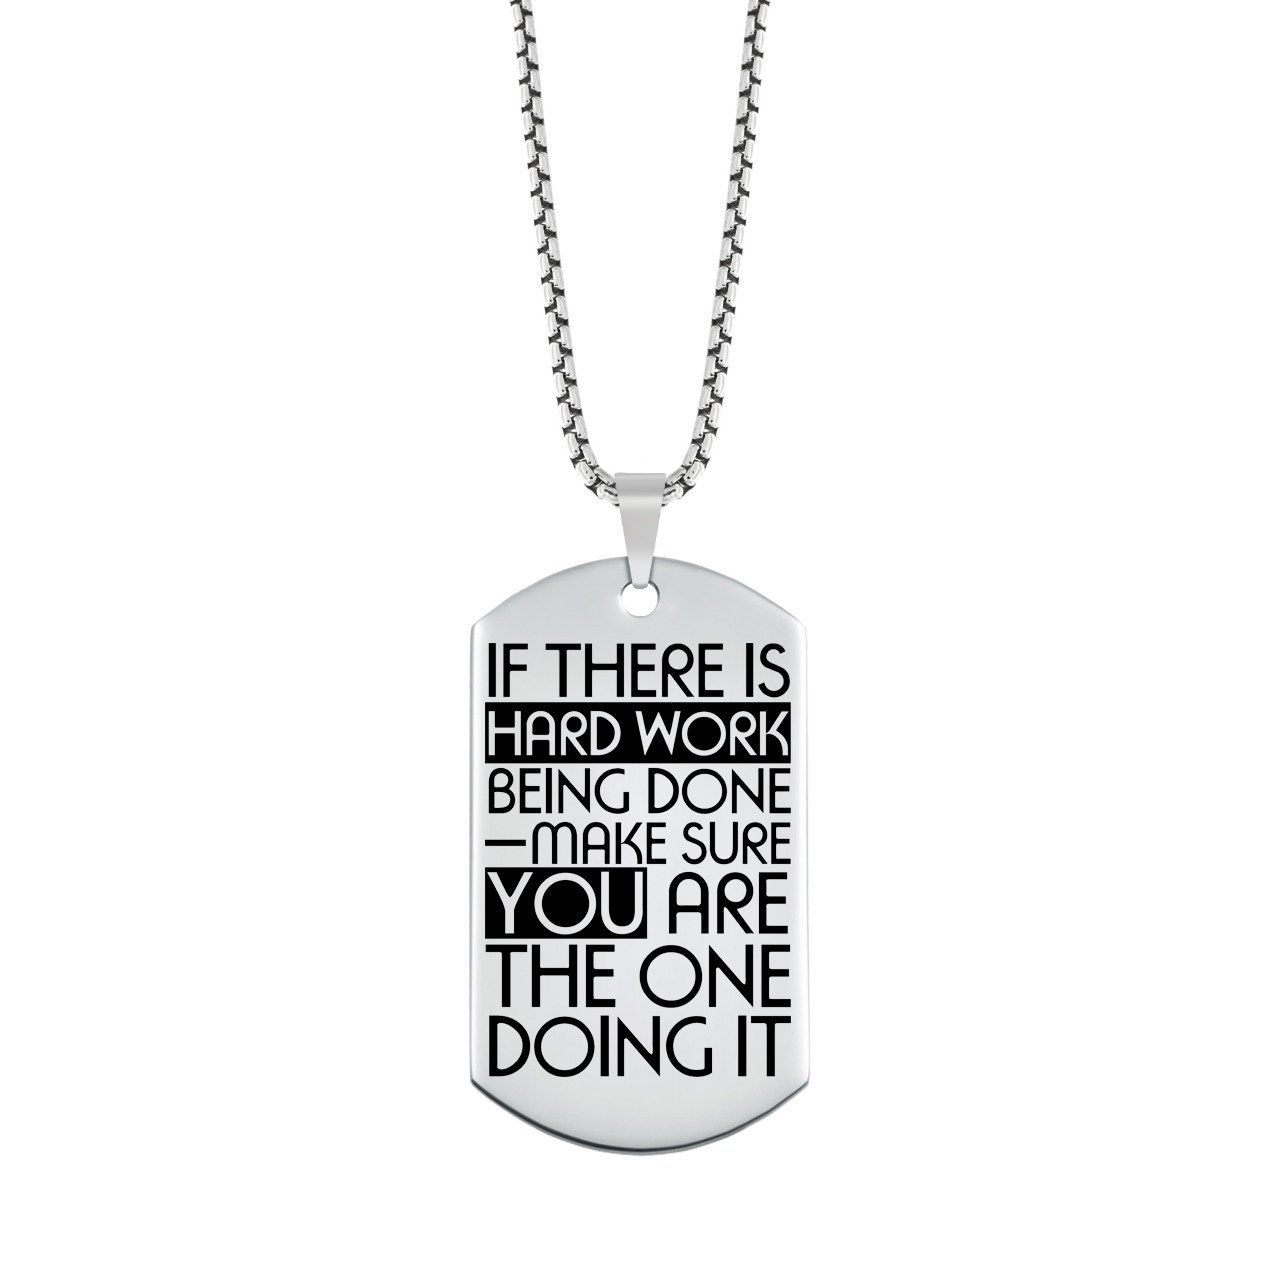 d966c3d23 Inspiration Quote Jewelry   Motivational Quote Dog Tag - Motivational  Jewelry for Men and Women - Personalized Quote Jewelry, Hard Work